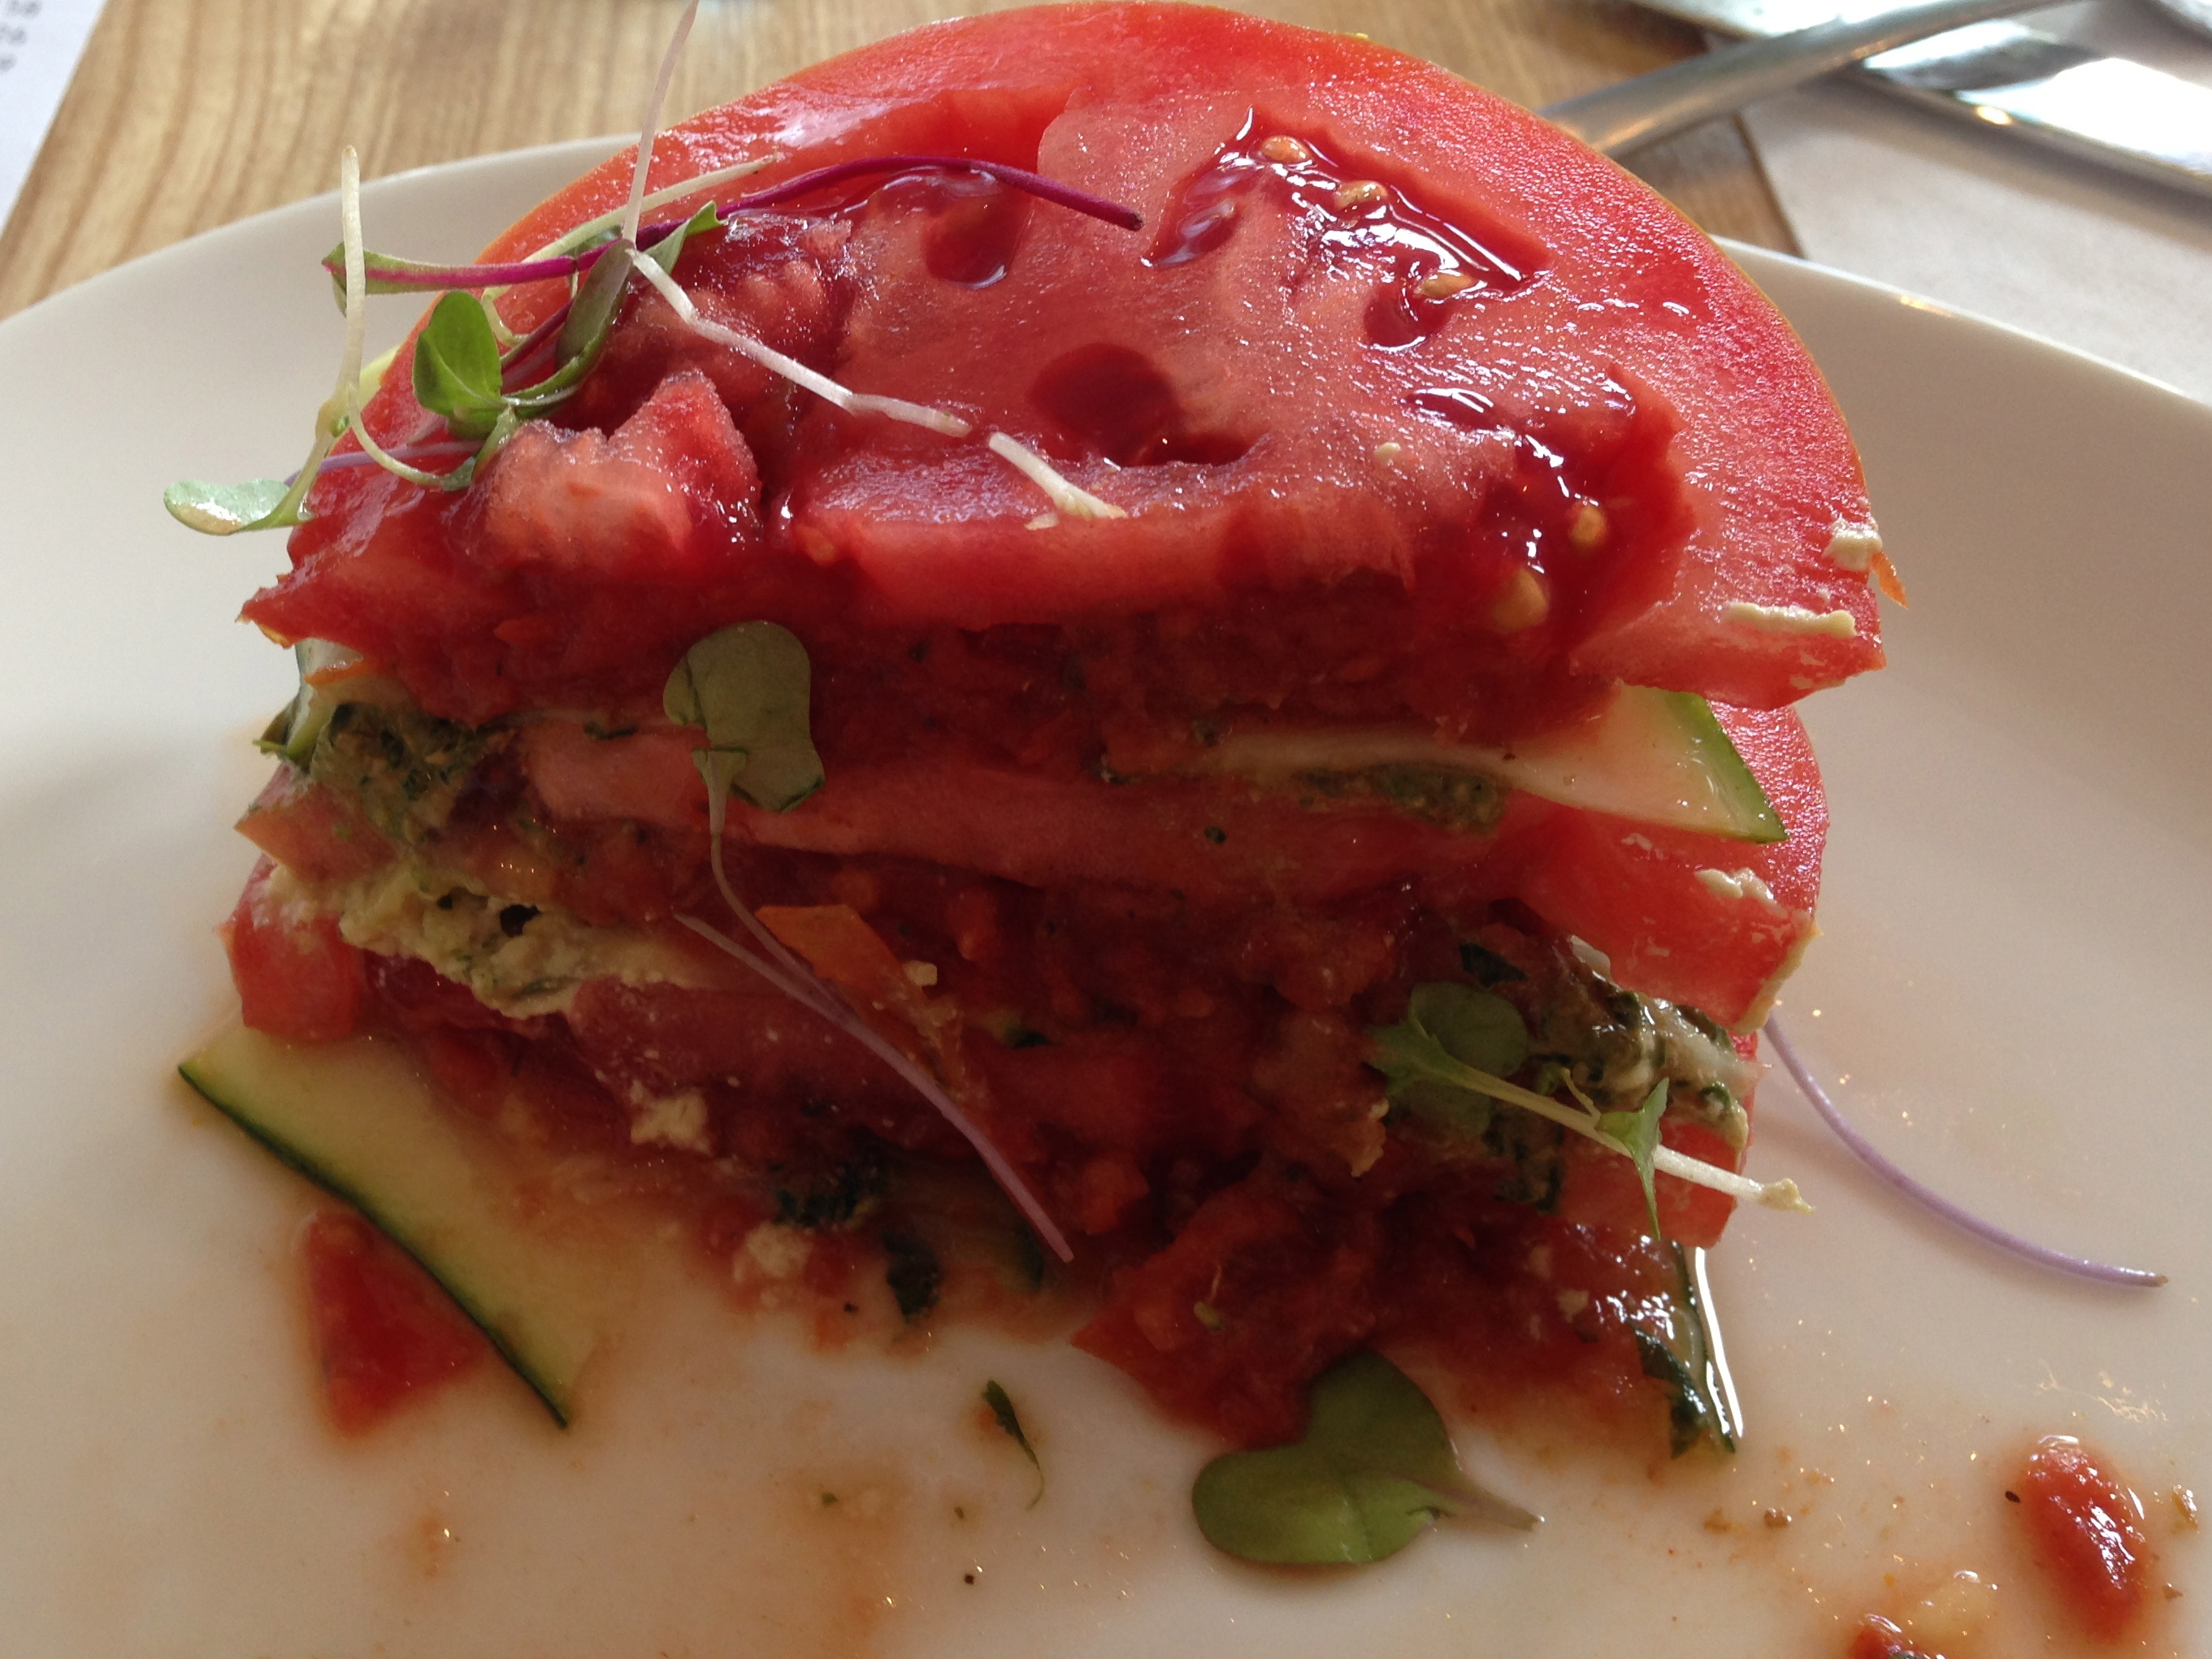 Healthy lifestyle tmihealth west palm beach nutritionist for Fresh tomato lasagna with olive tapenade